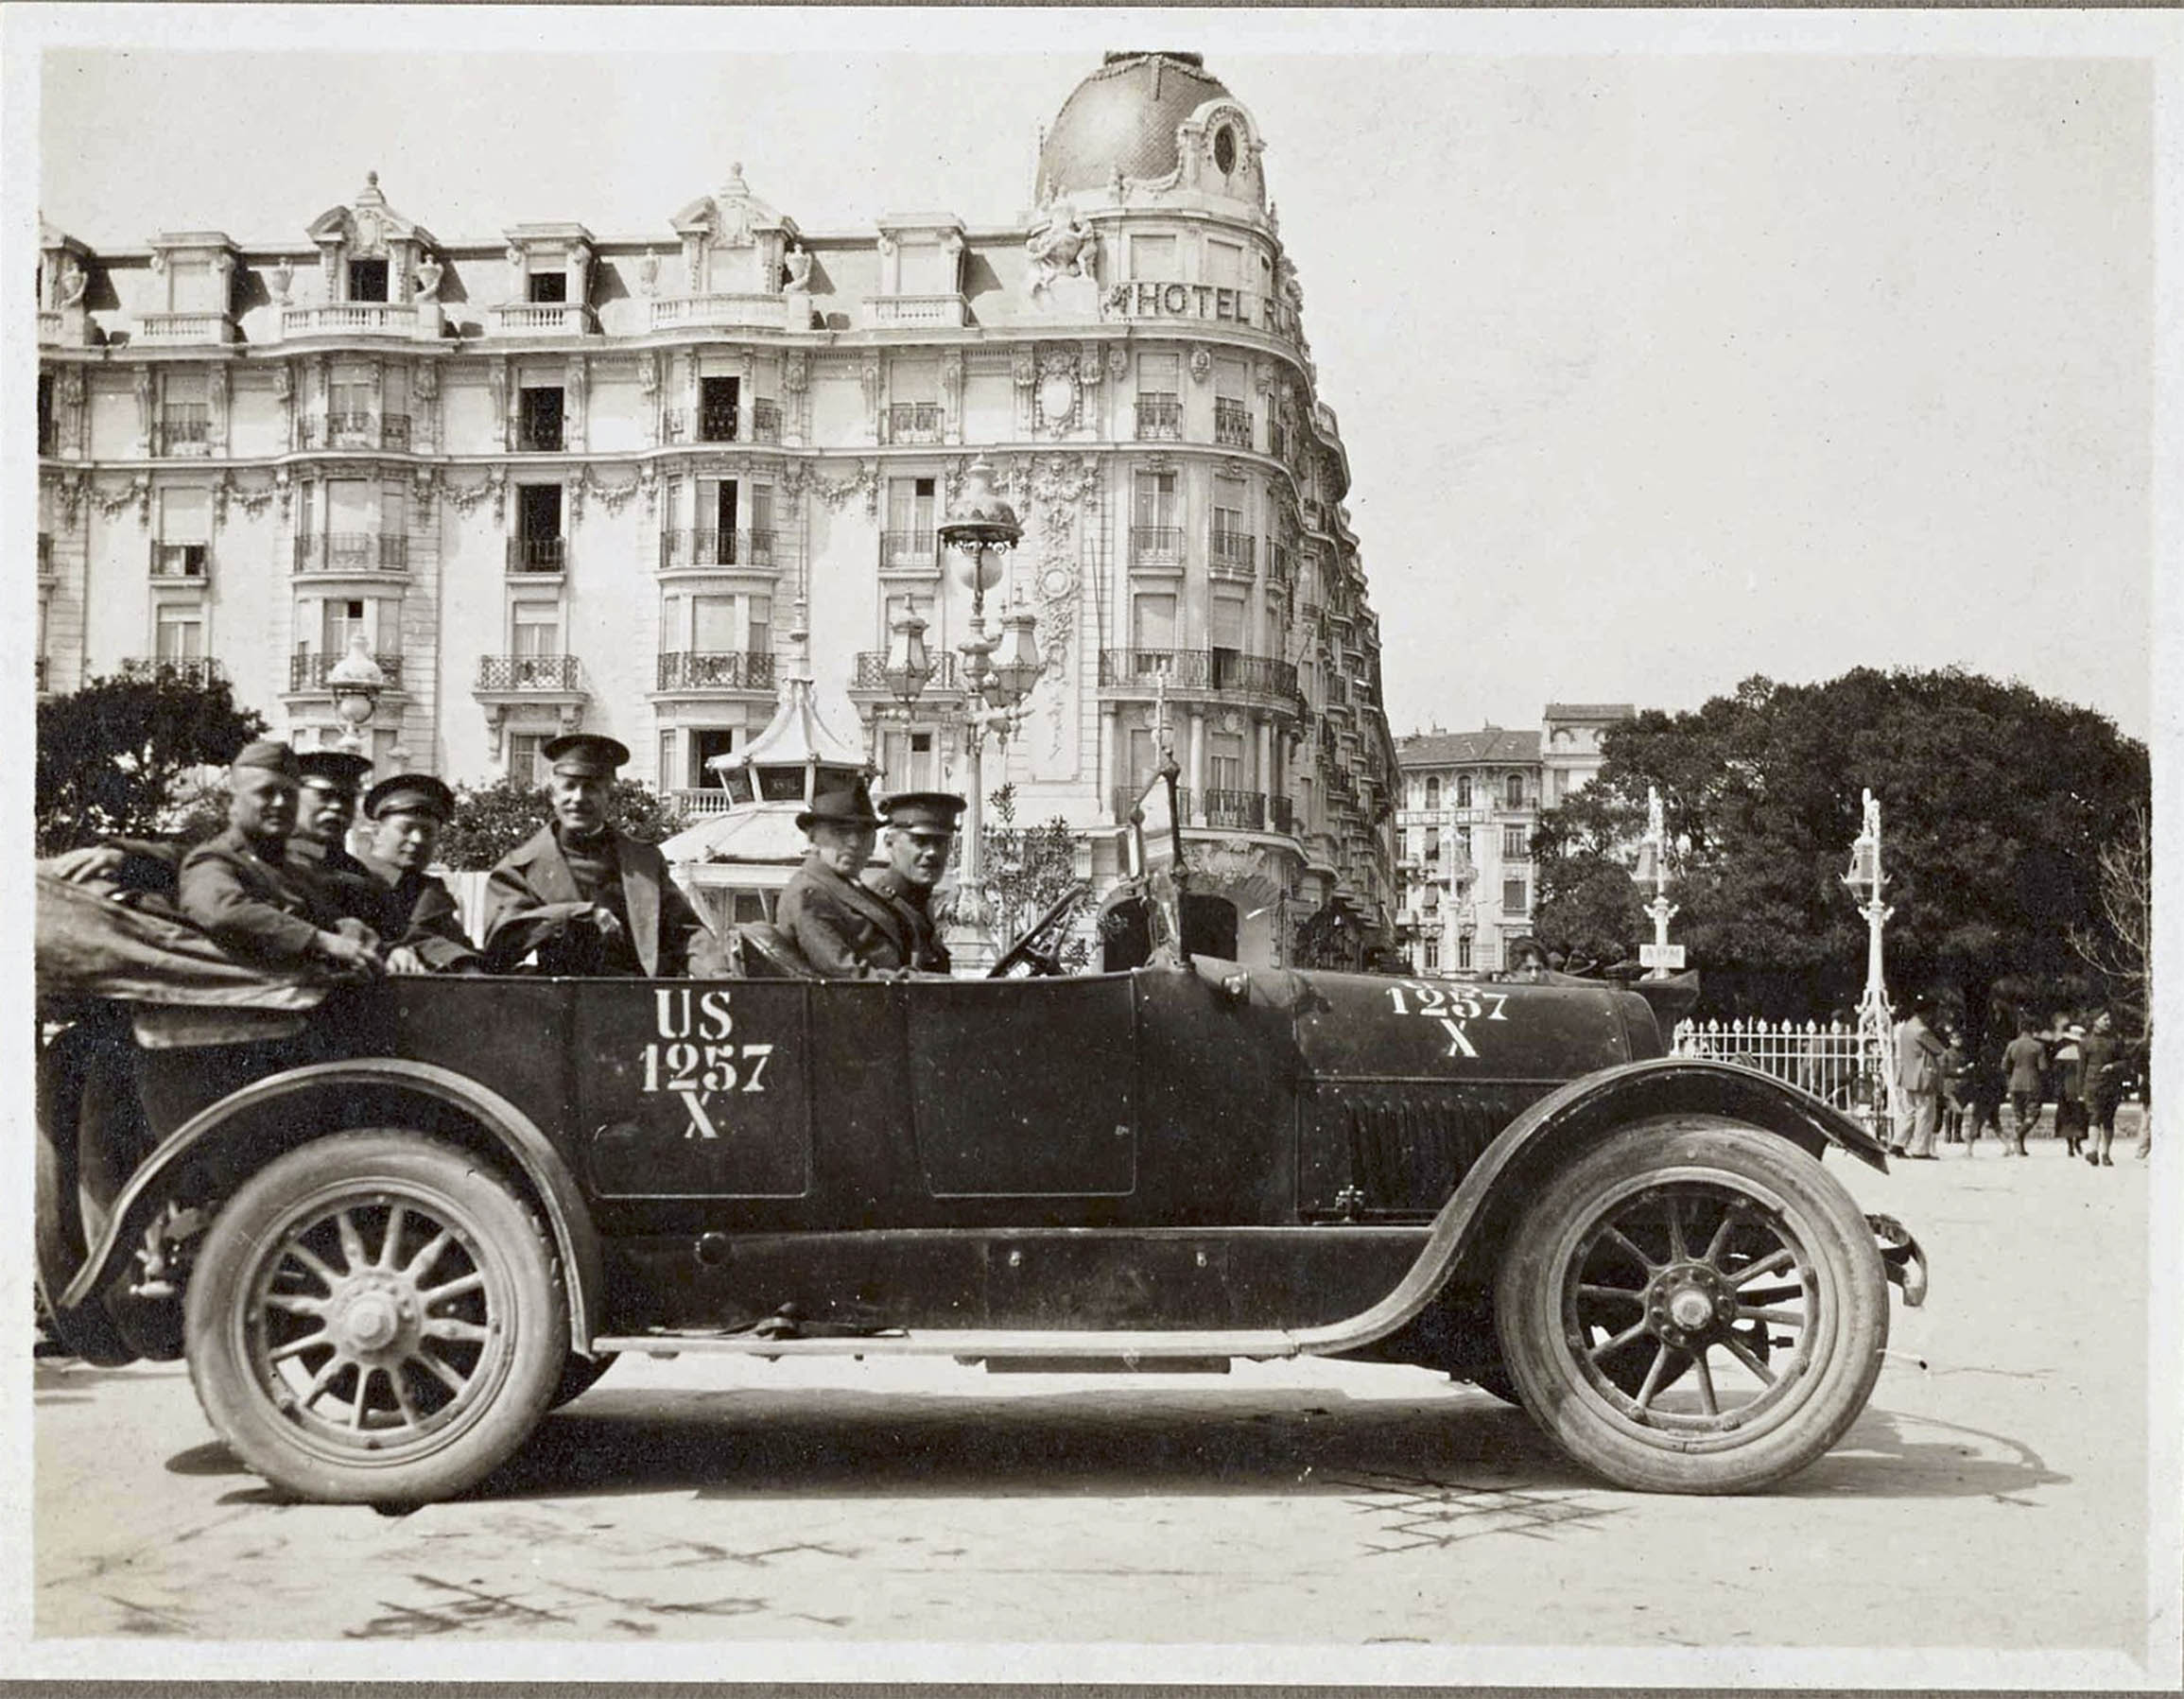 Dr. Denison at the wheel of his 1918 Cadillac Type 57 in Nice, France 1918. According to Mark Gessler, president of the Historical Vehicle Association, the U.S. military numbering on the car indicates that it was (1) a passenger vehicle, (257) the 257th passenger vehicle to arrive in Europe for support of the war effort, and (X) a privately-owned vehicle. Marc Lassen, the current owner of the Cadillac, believes the car was wearing its original blue paint in this photo.